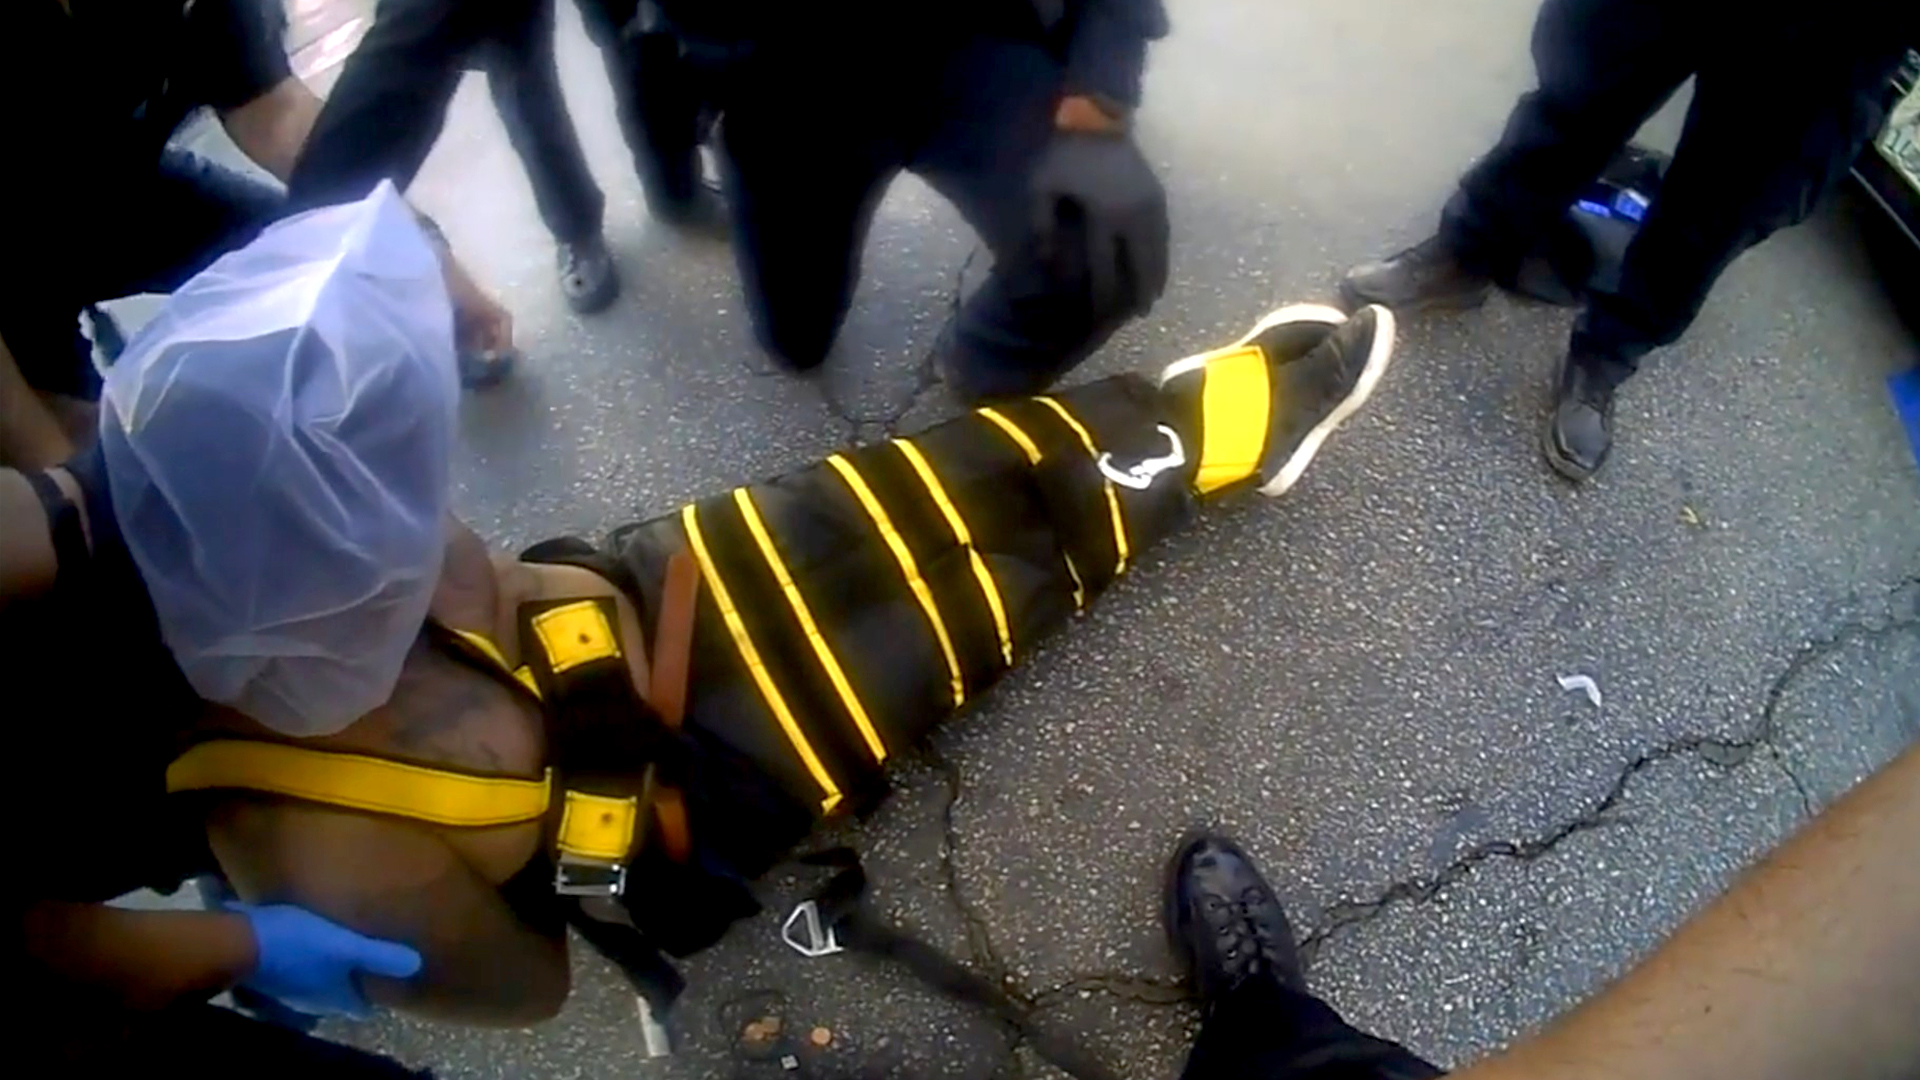 VIDEO: Six Laughing Police Pinned Hooded Suspect To The Ground As He Choked To Death